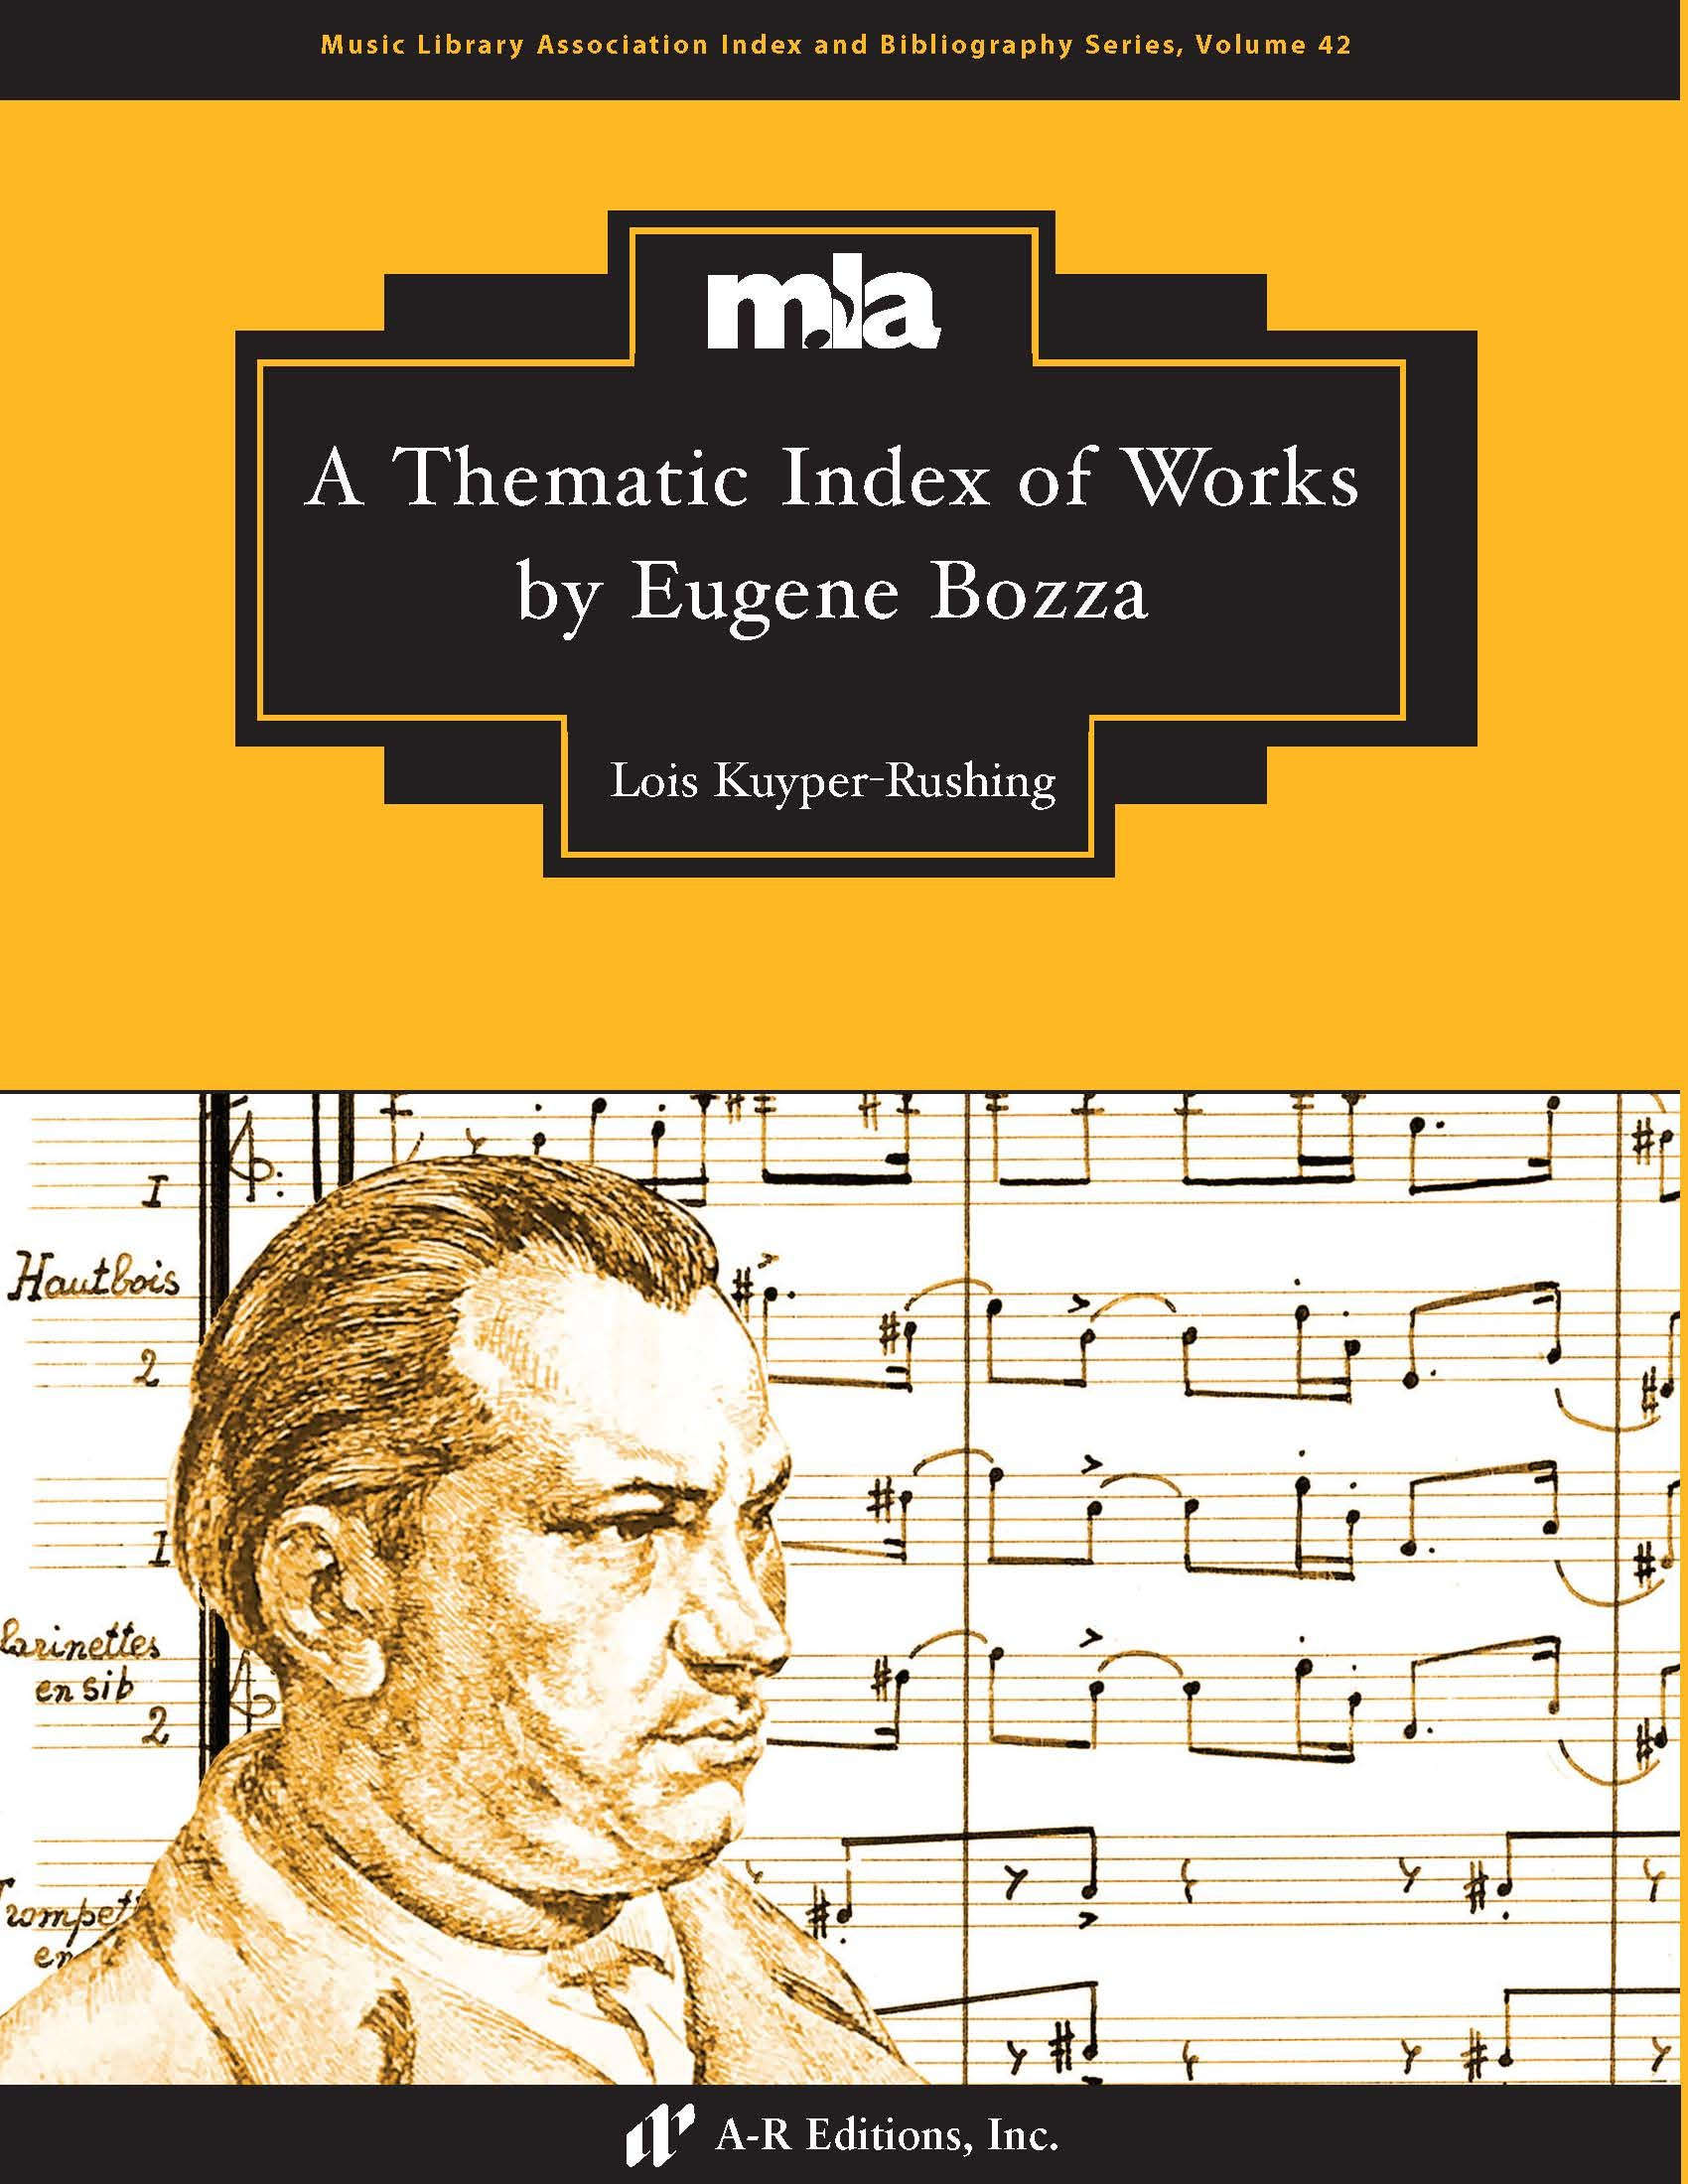 Kuyper-Rushing: Thematic Index of Works by Eugene Bozza